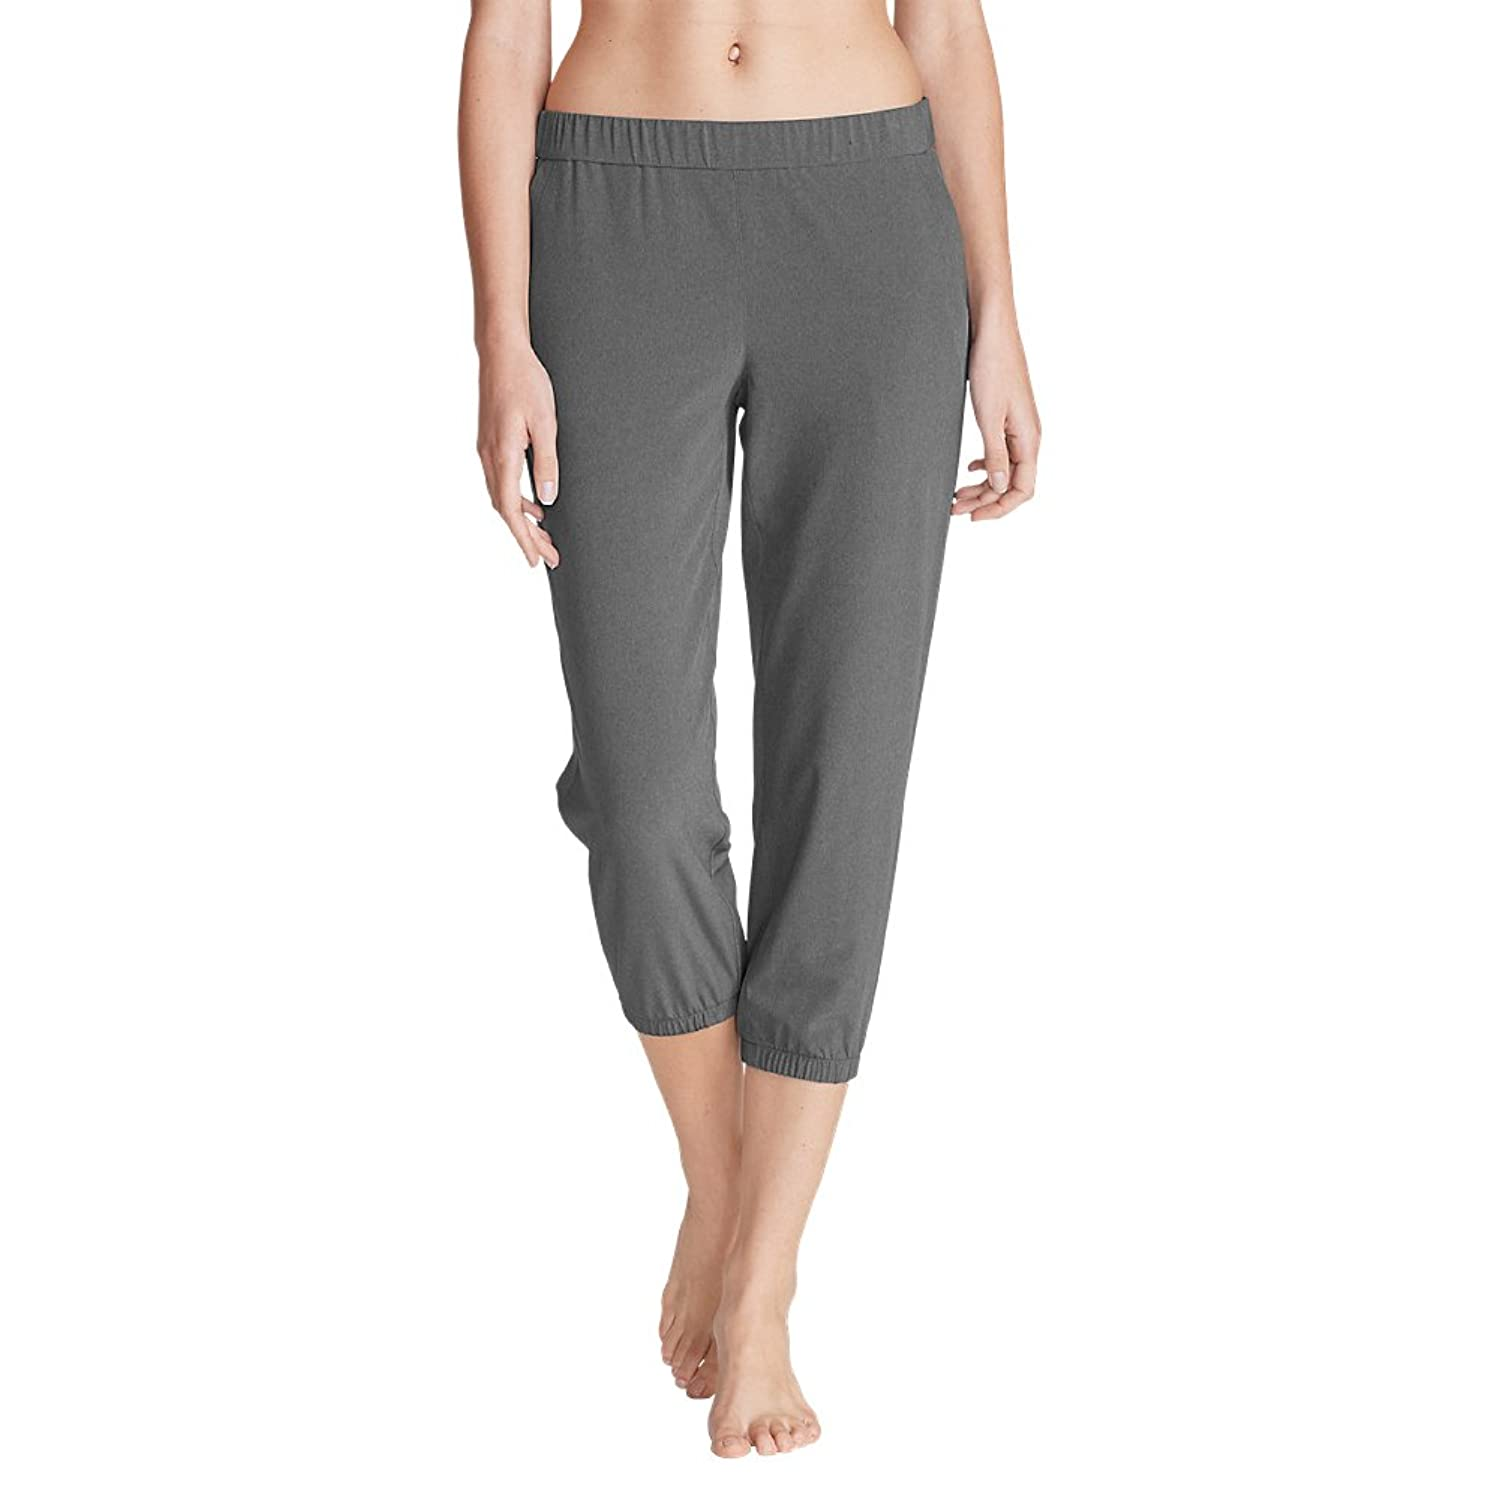 Eddie Bauer Women's Myriad Crop Pants - Solid Heather